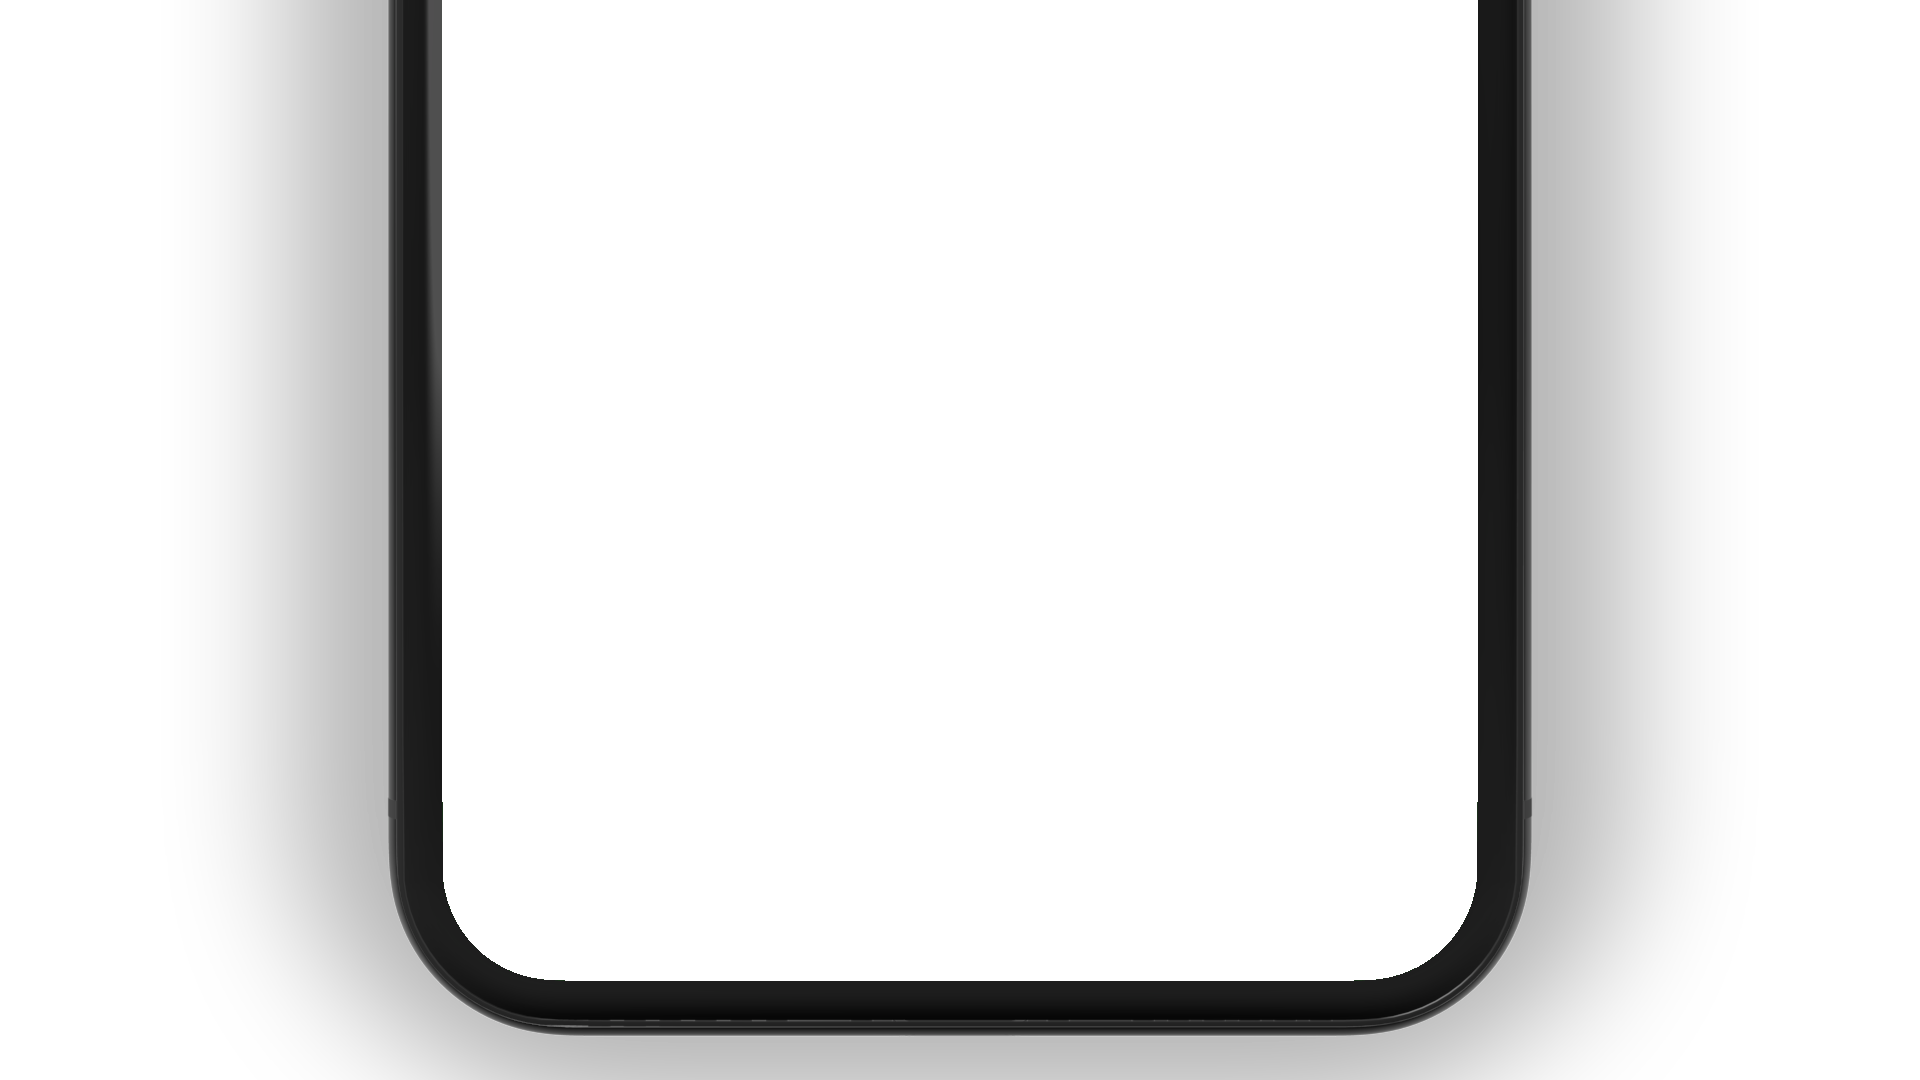 iPhone PNG bottom view